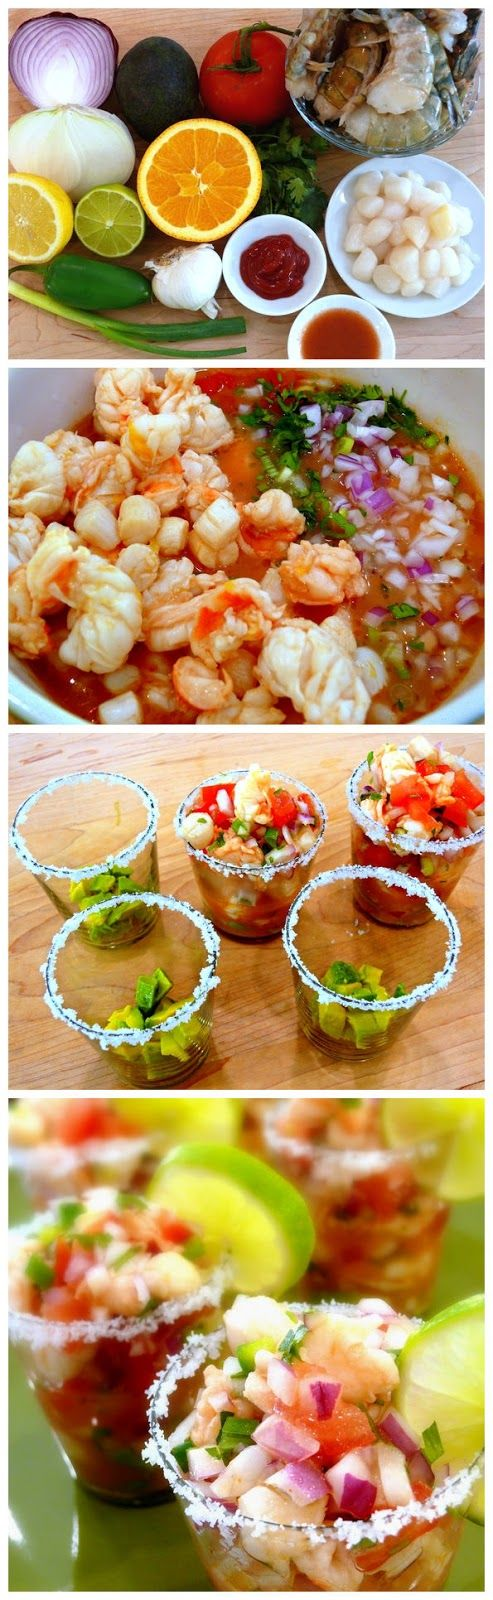 I've looked all over the net and haven't found a shrimp ceviche quite like this one! My friends absolutely love…